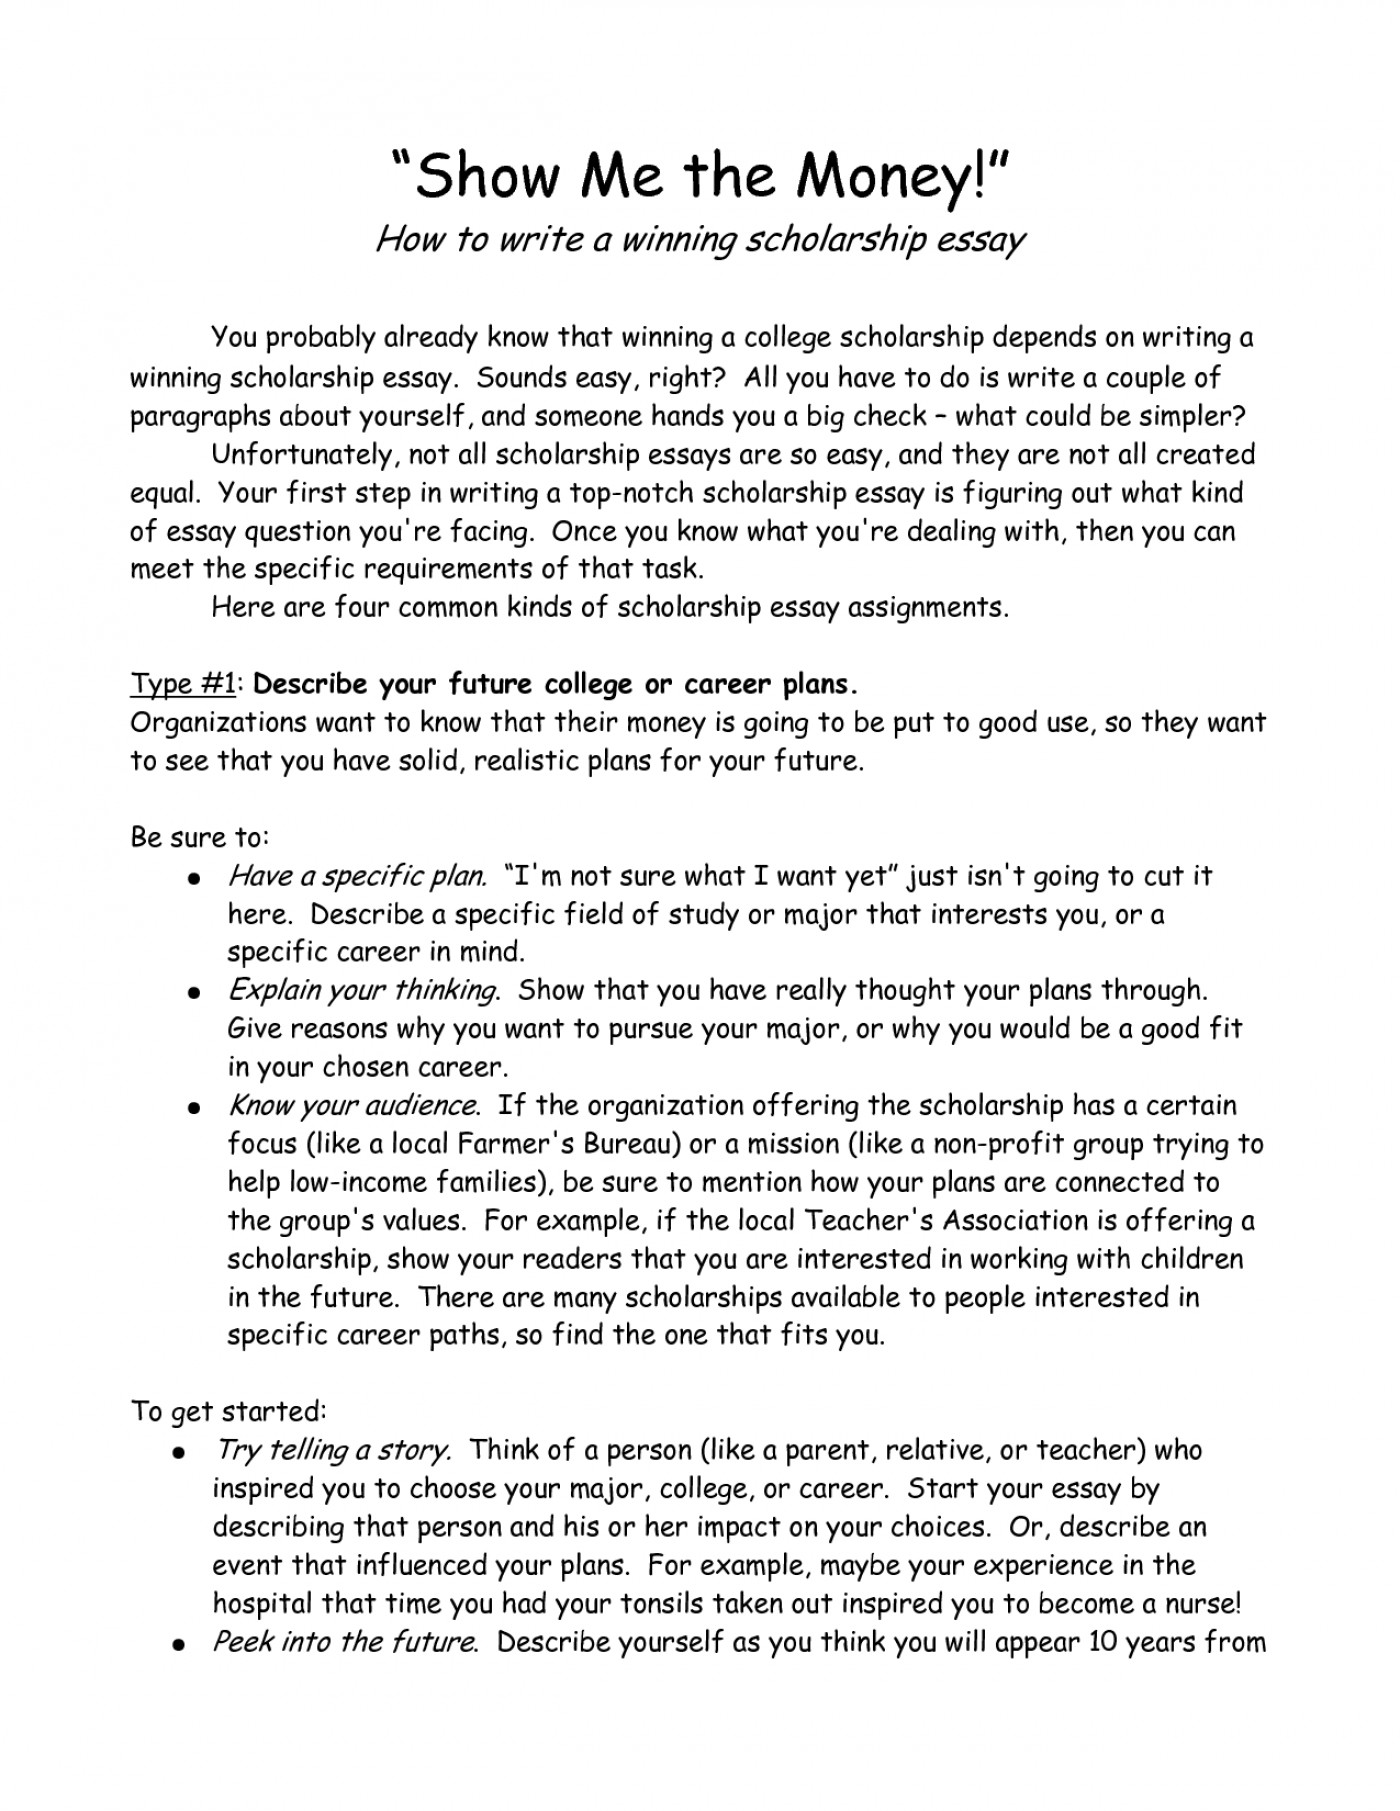 001 Scholarship Essays Essay Unusual Prompts 2018 About Goals Scholarships Without 2019 1400